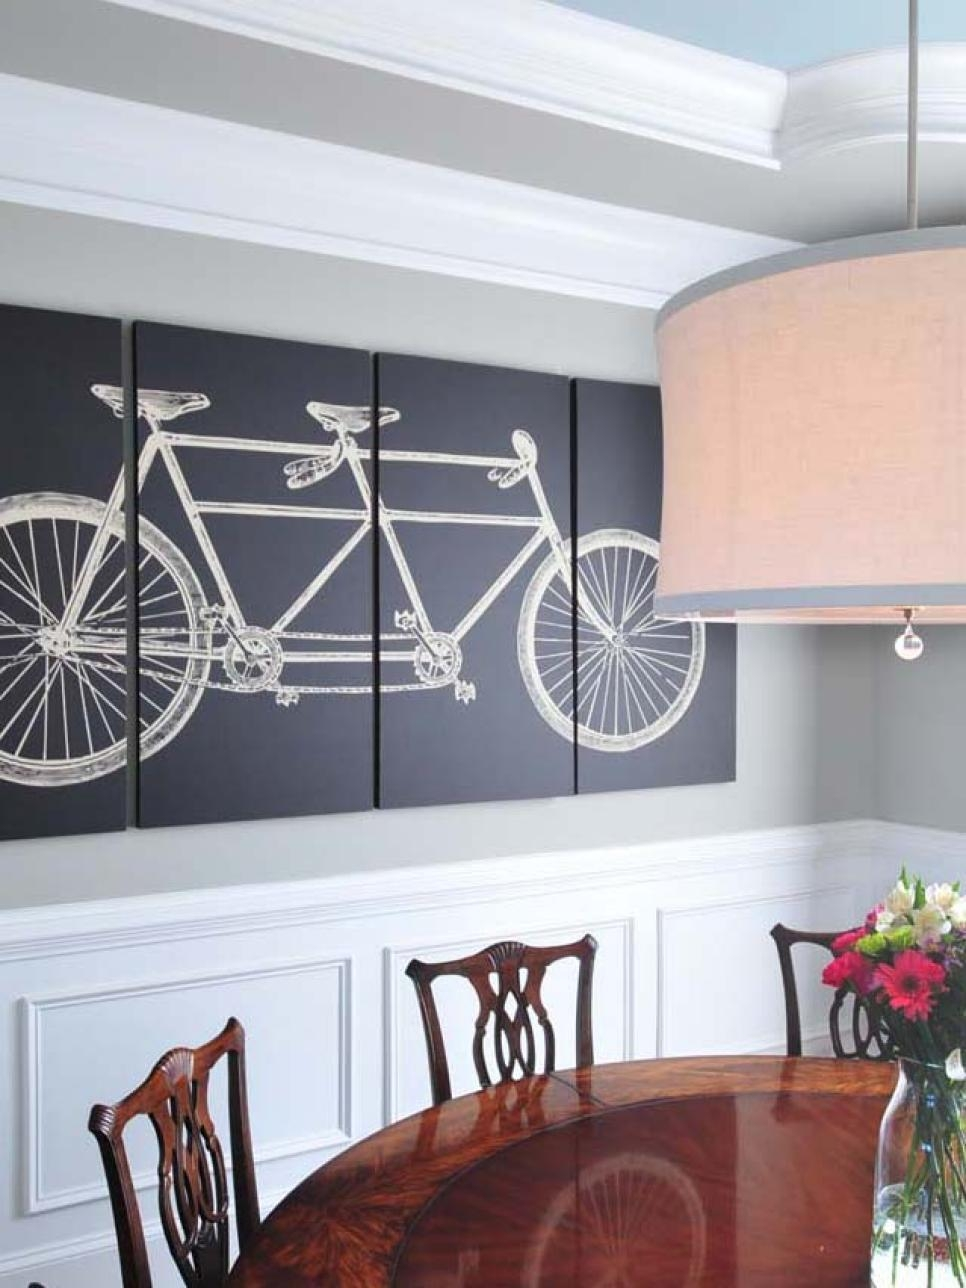 15 Dining Room Decorating Ideas | Hgtv Intended For Wall Art For Dining Room (Image 1 of 20)